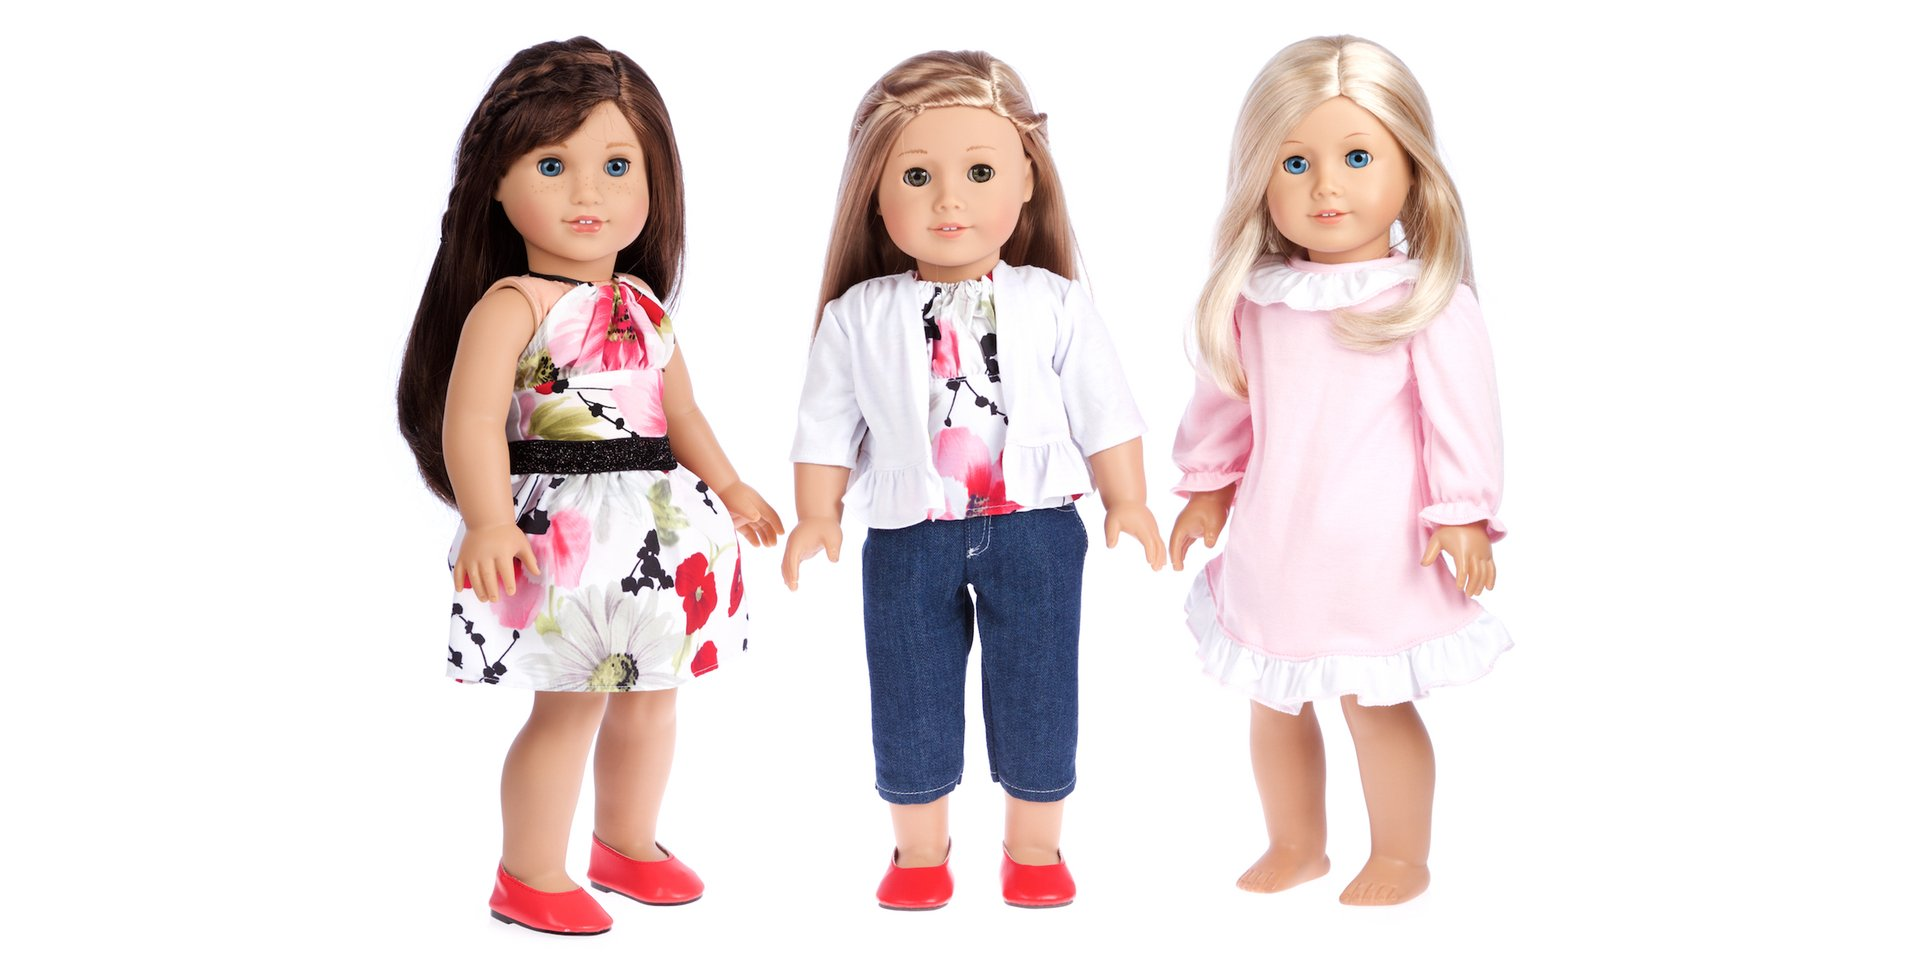 Dressy Doll Playset - Doll Clothes